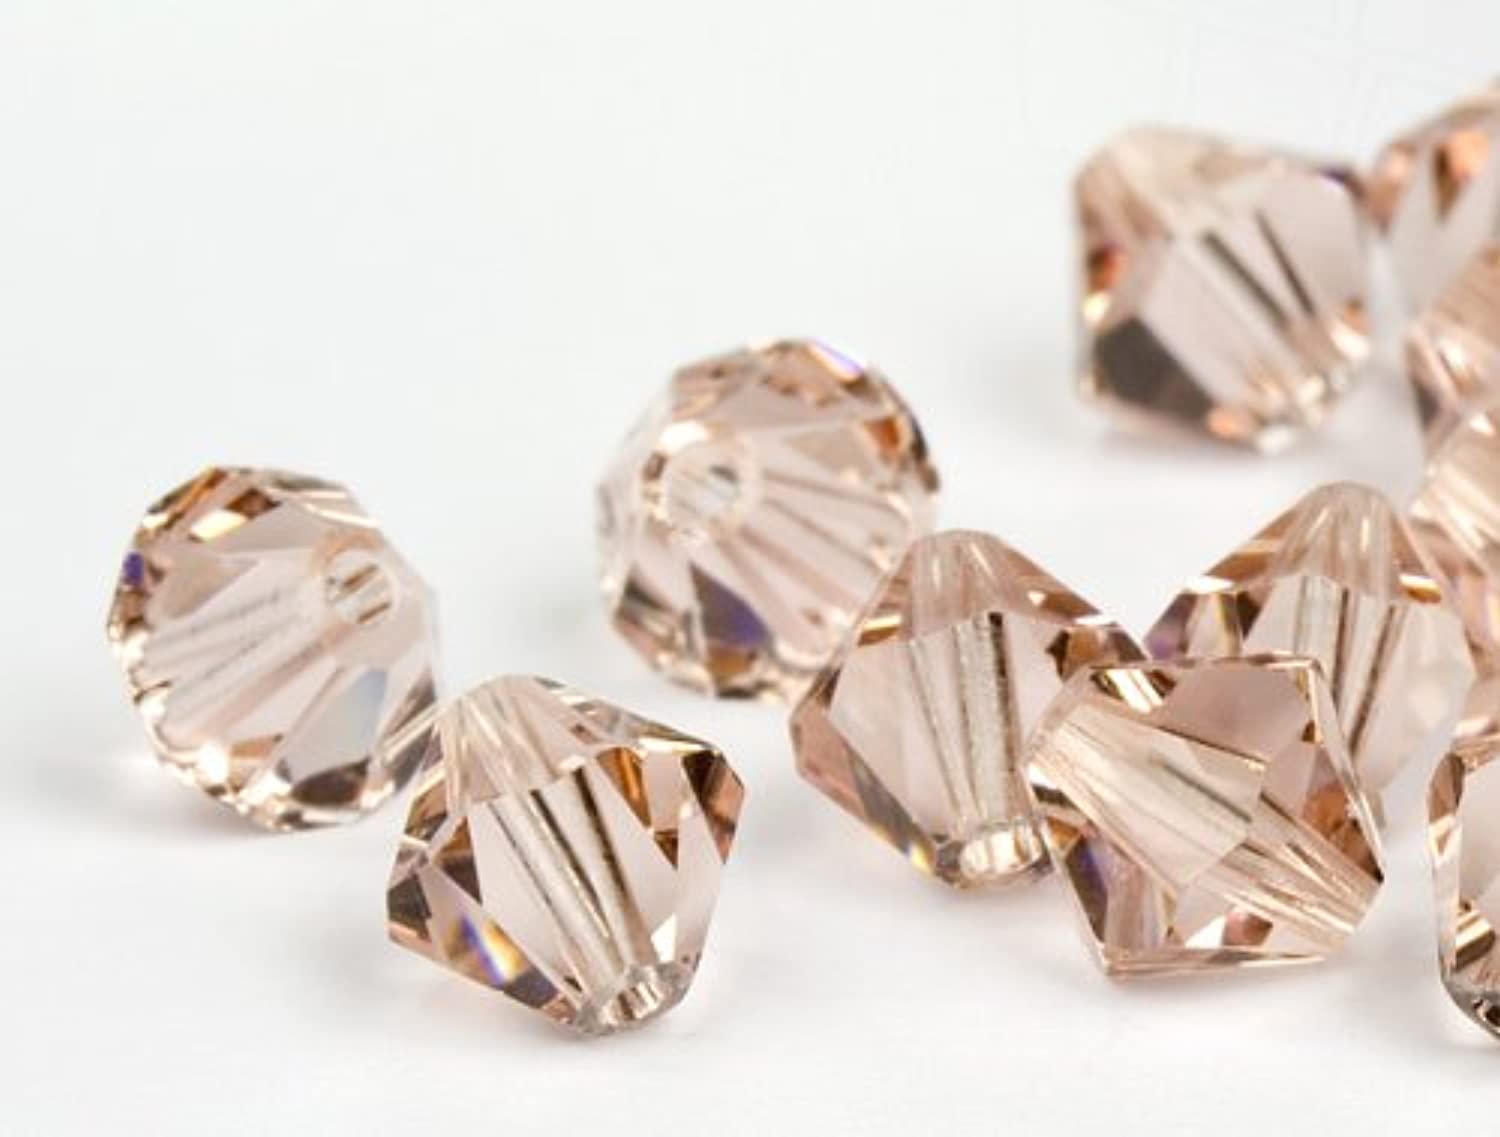 Glass Beads of Swarovski Elements Bicone 3mm (Vintage pink), 1440 Pieces (10 Gross)